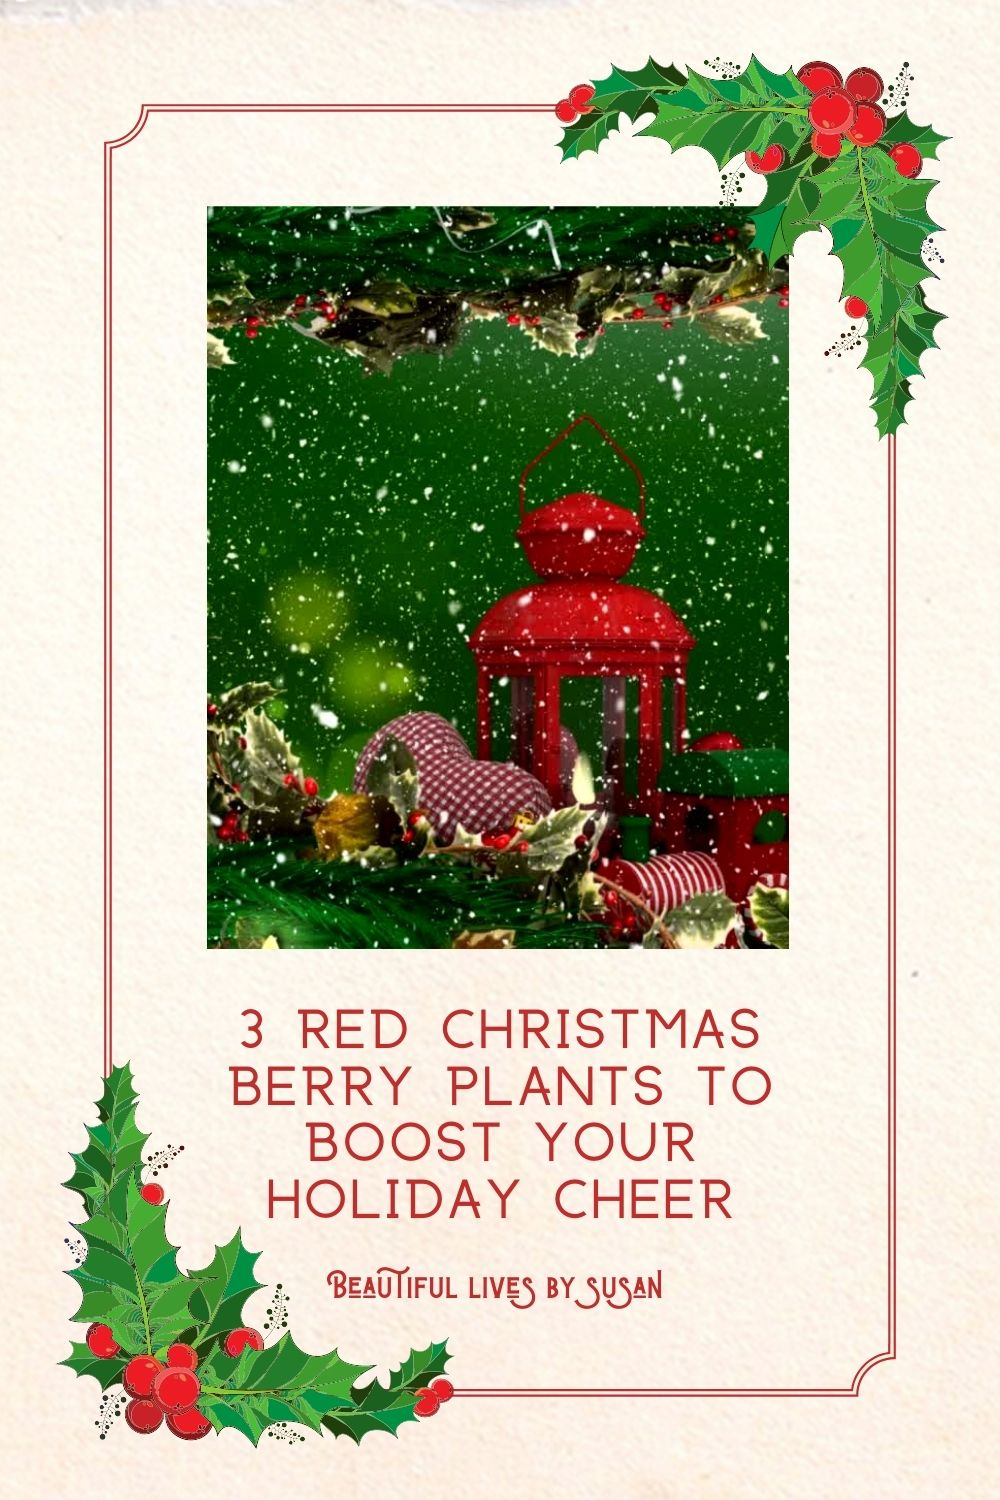 3 Red Christmas Berry Plants to Boost Your Holiday Cheer